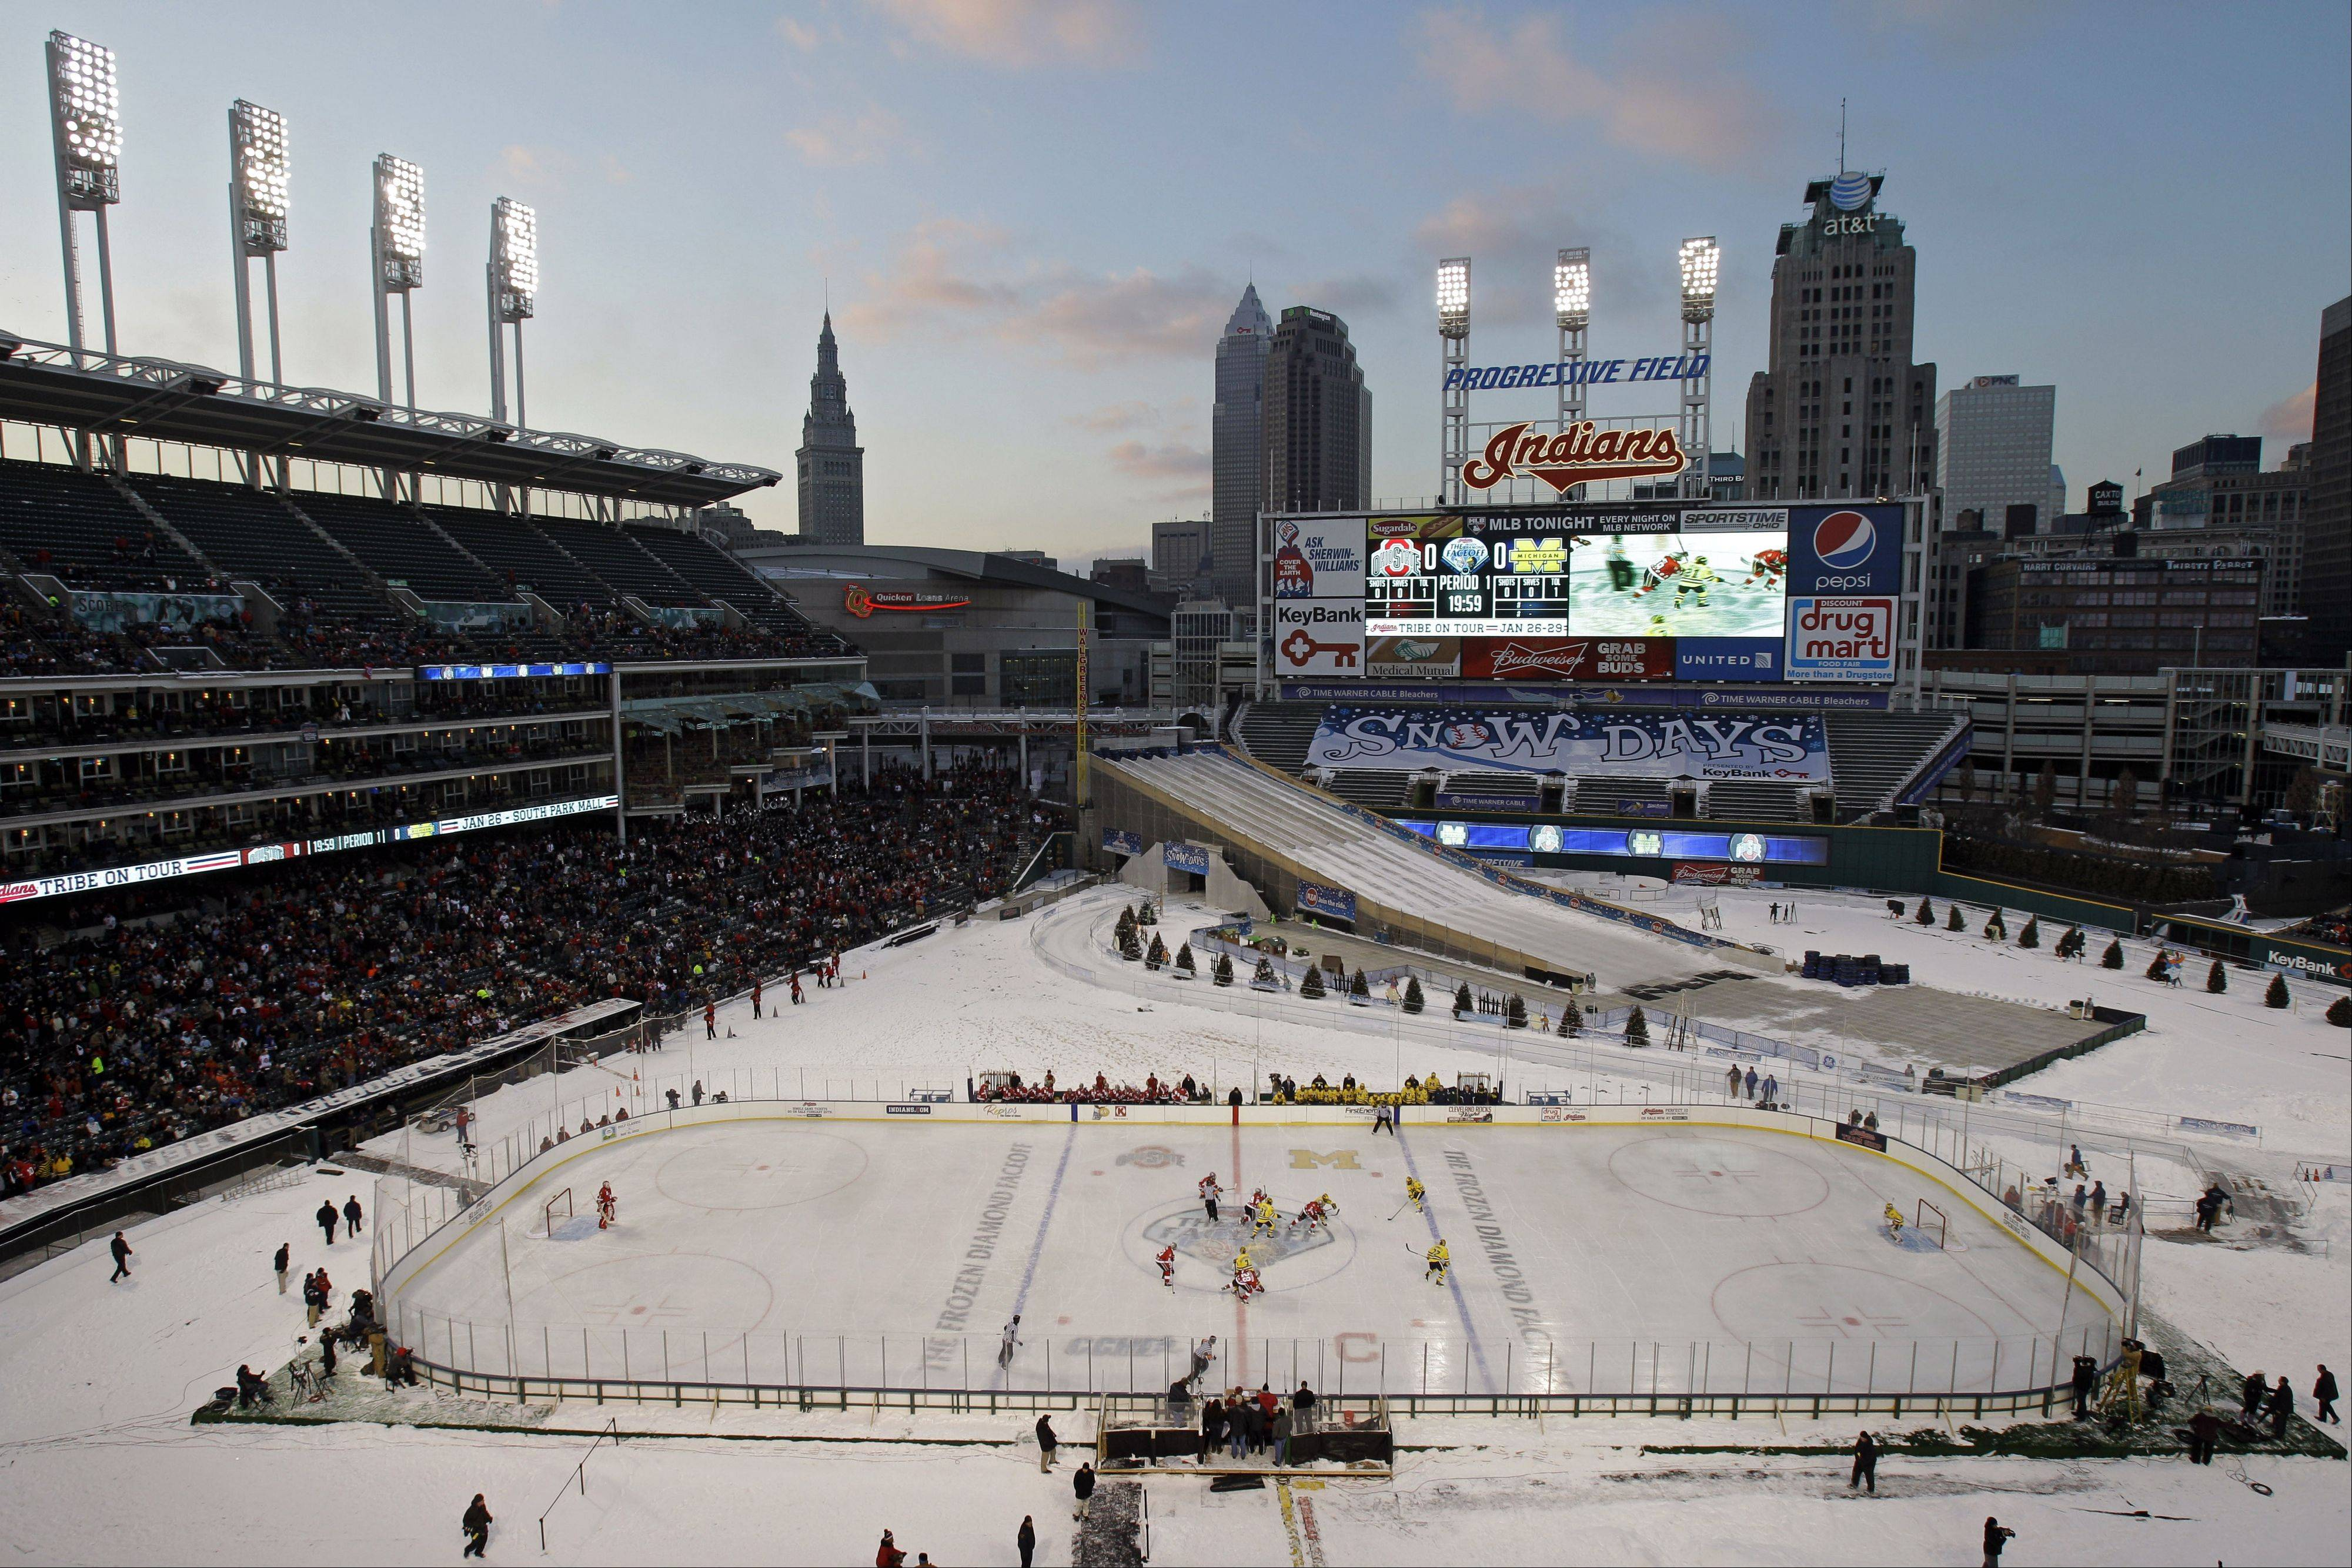 Last January, Michigan and Ohio State played an outdoor college hockey game in Cleveland. Next February, Soldier Field with host four college men's teams for two games billed as the Hockey City Classic. Wisconsin will play Minnesota, and Notre Dame will play Miami (Ohio).